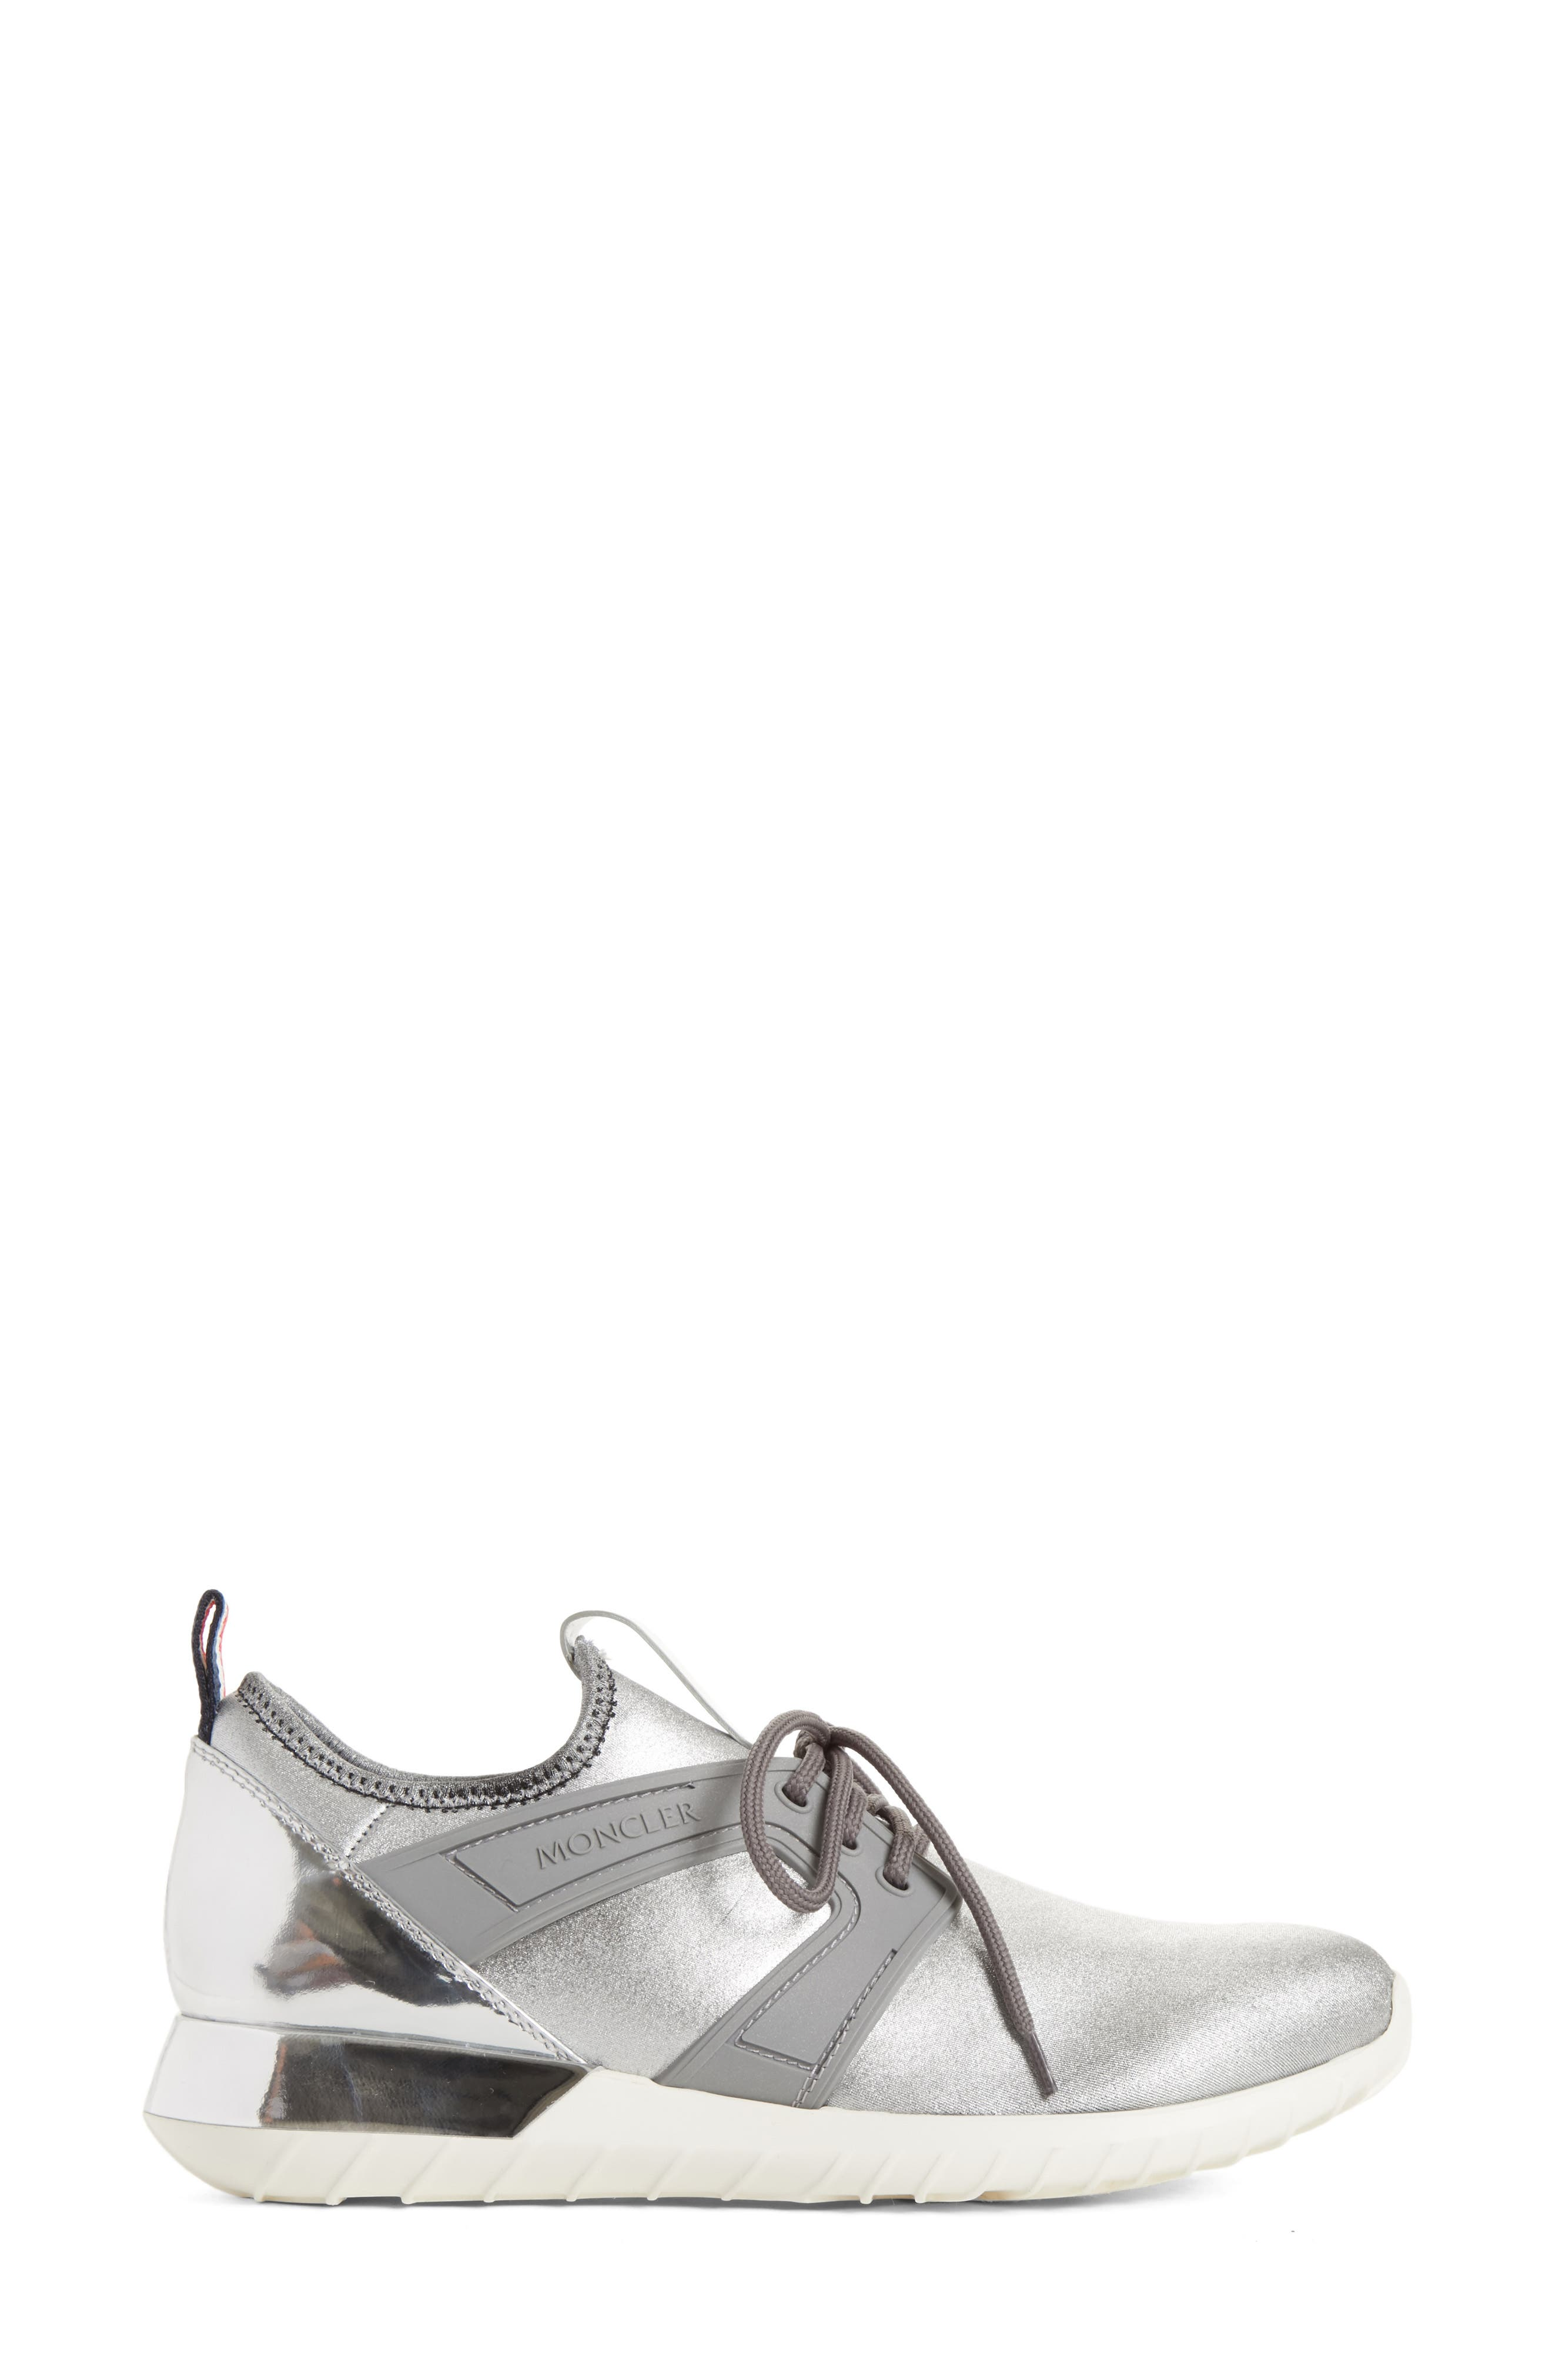 Meline Runner Sneaker,                             Alternate thumbnail 3, color,                             044